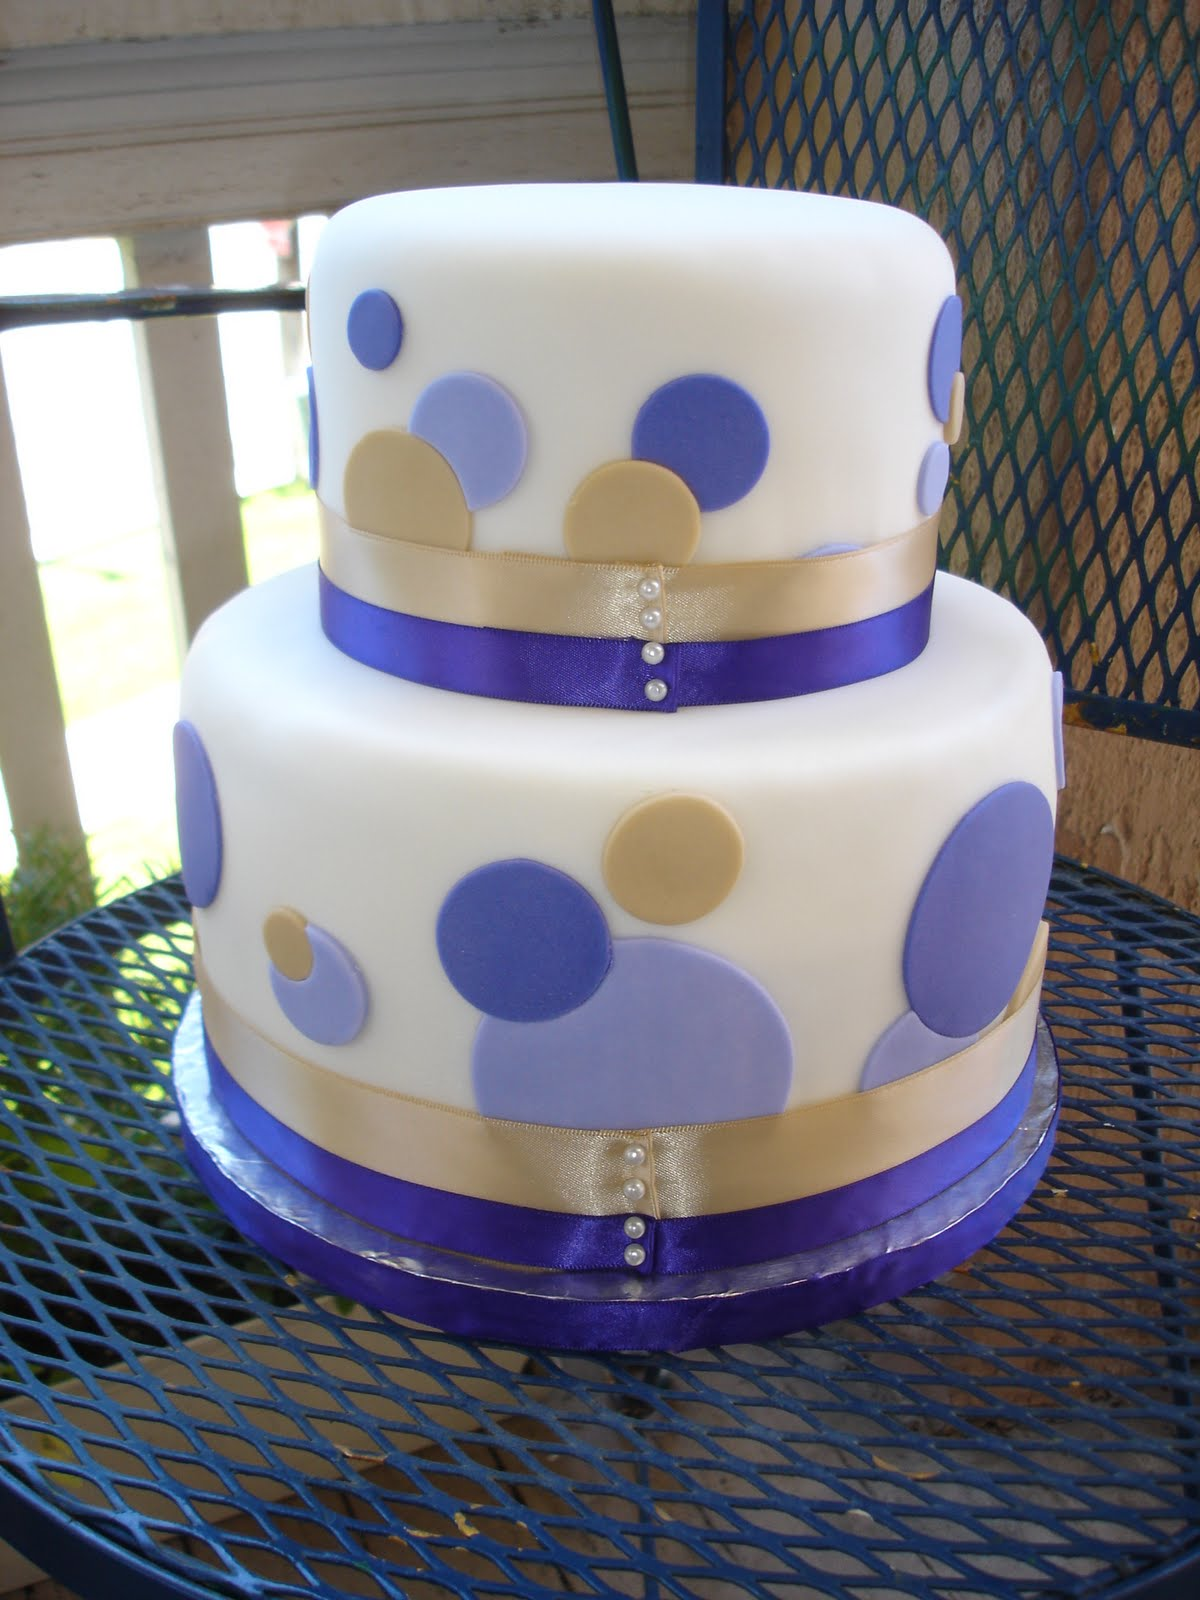 Cake As An Art A Polka Dot Wedding Cake